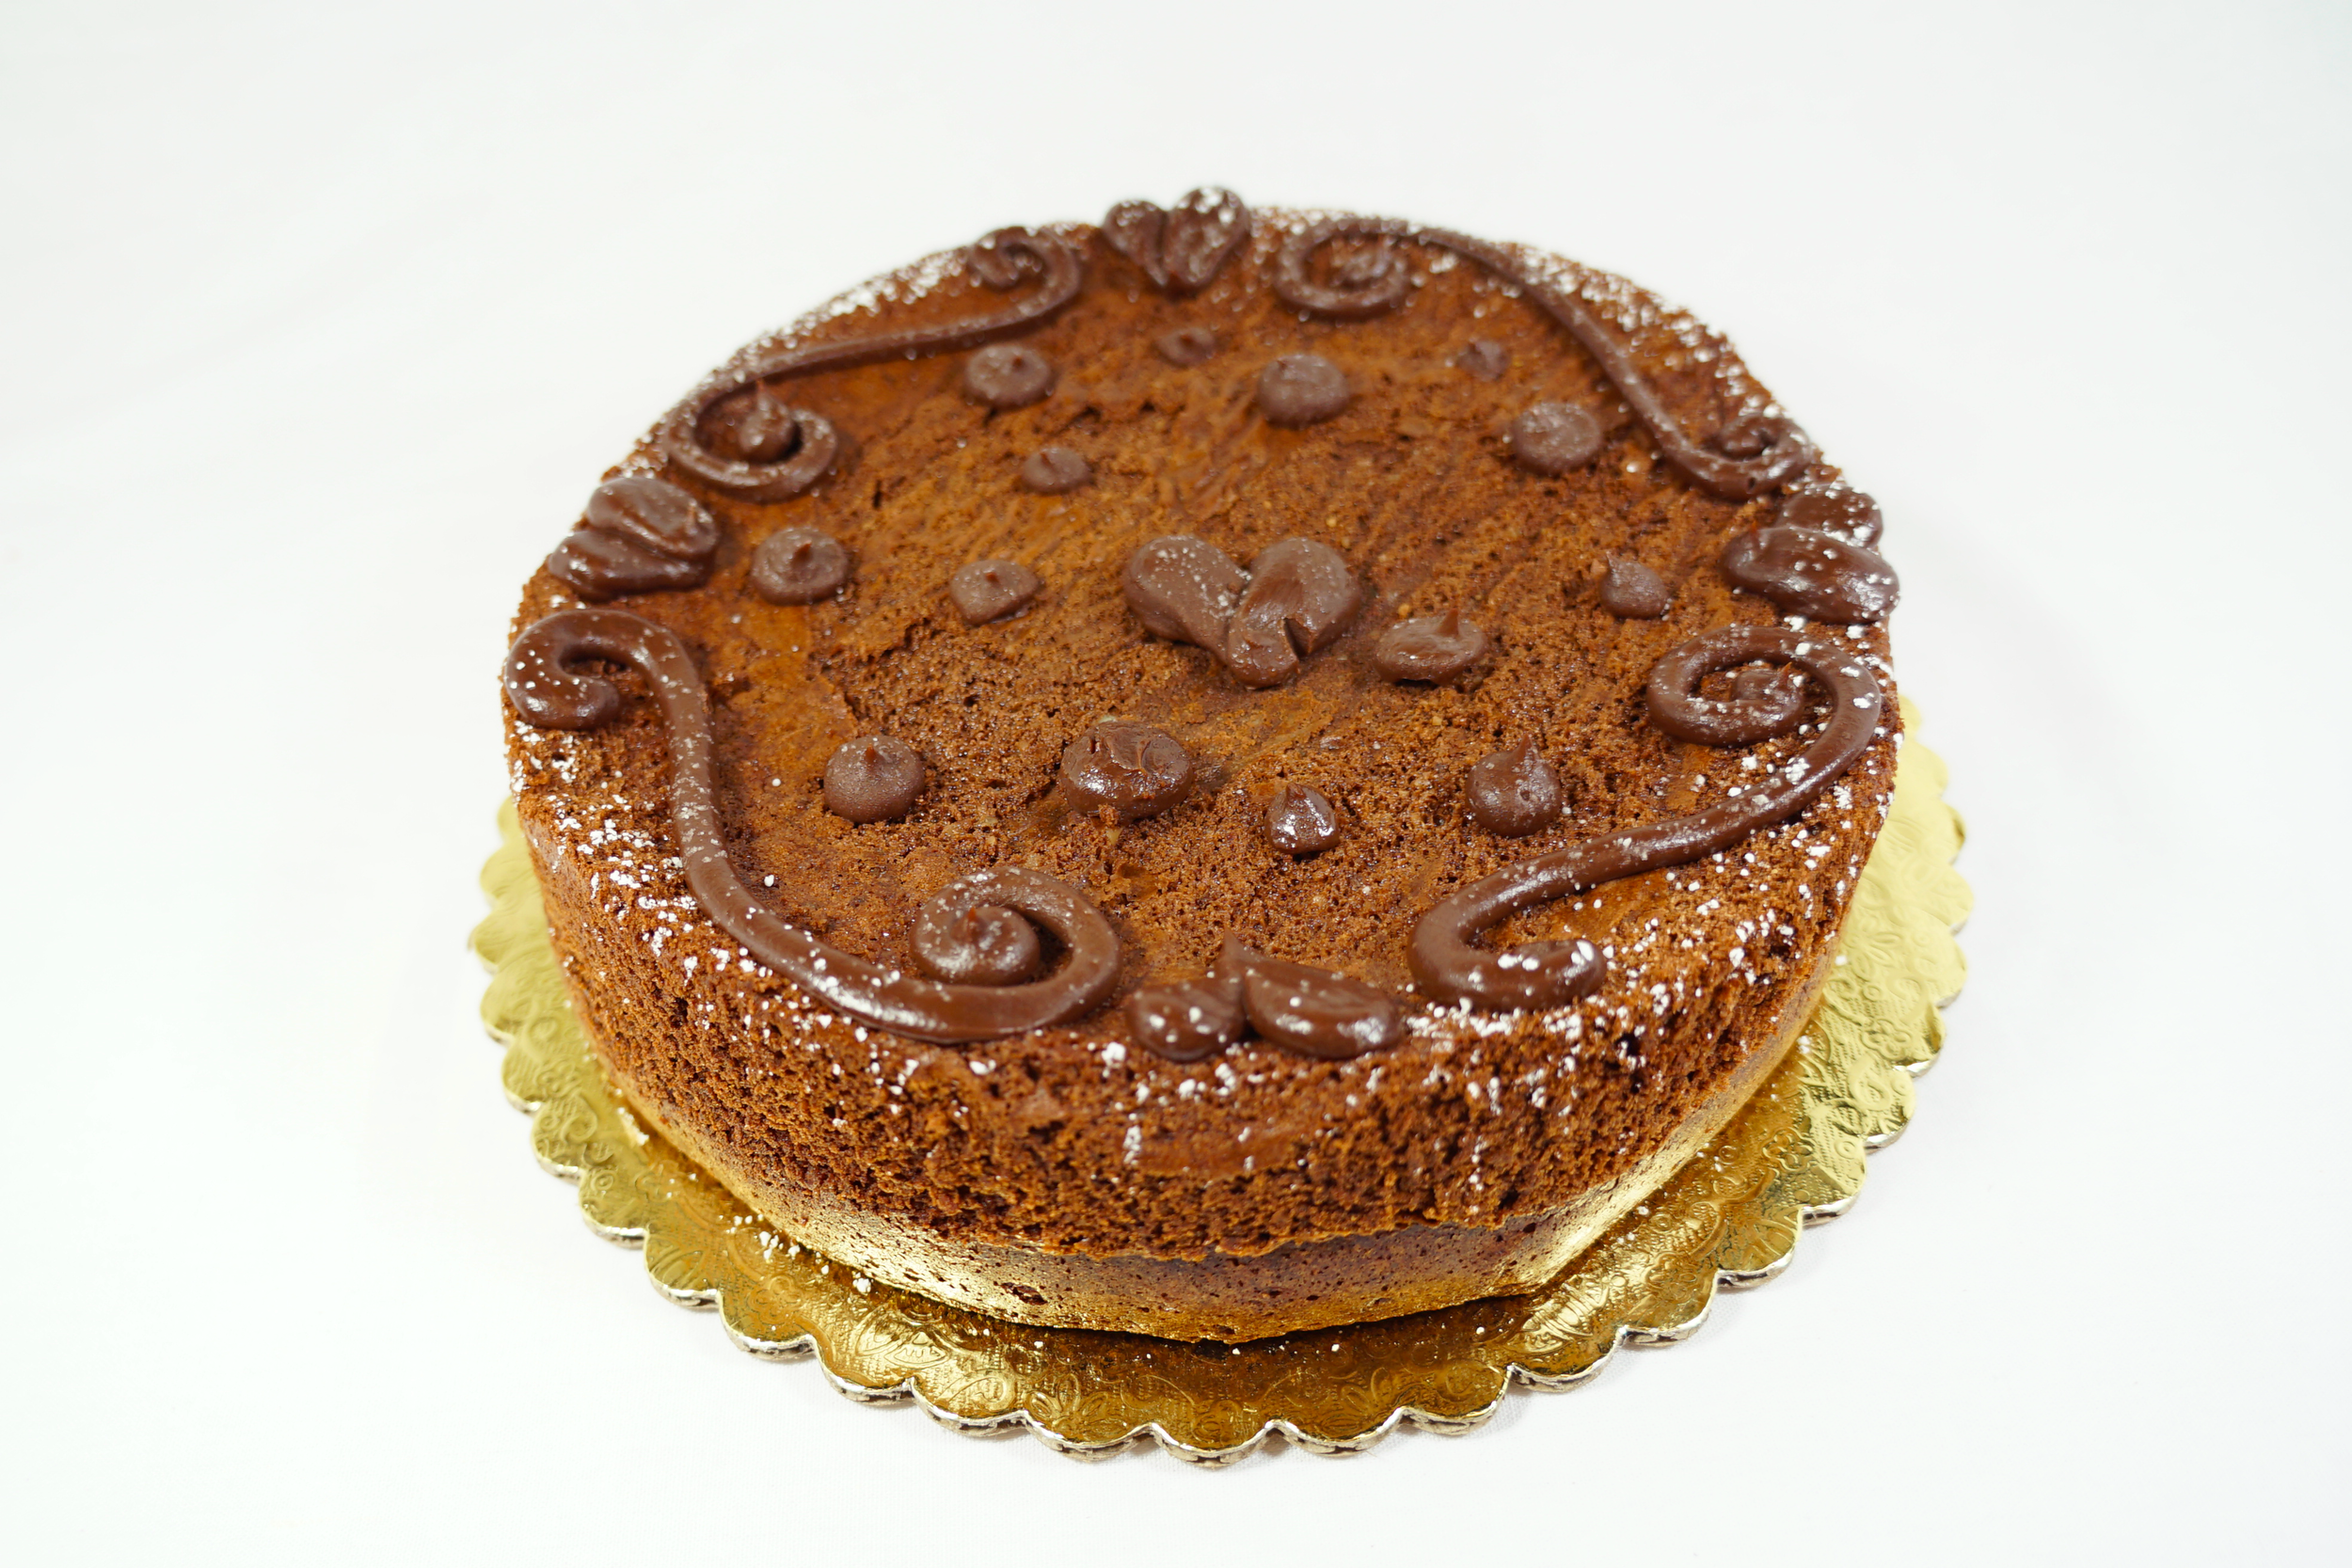 Flourless - A dark chocolate, ground almond cake made with egg whites and yolks.